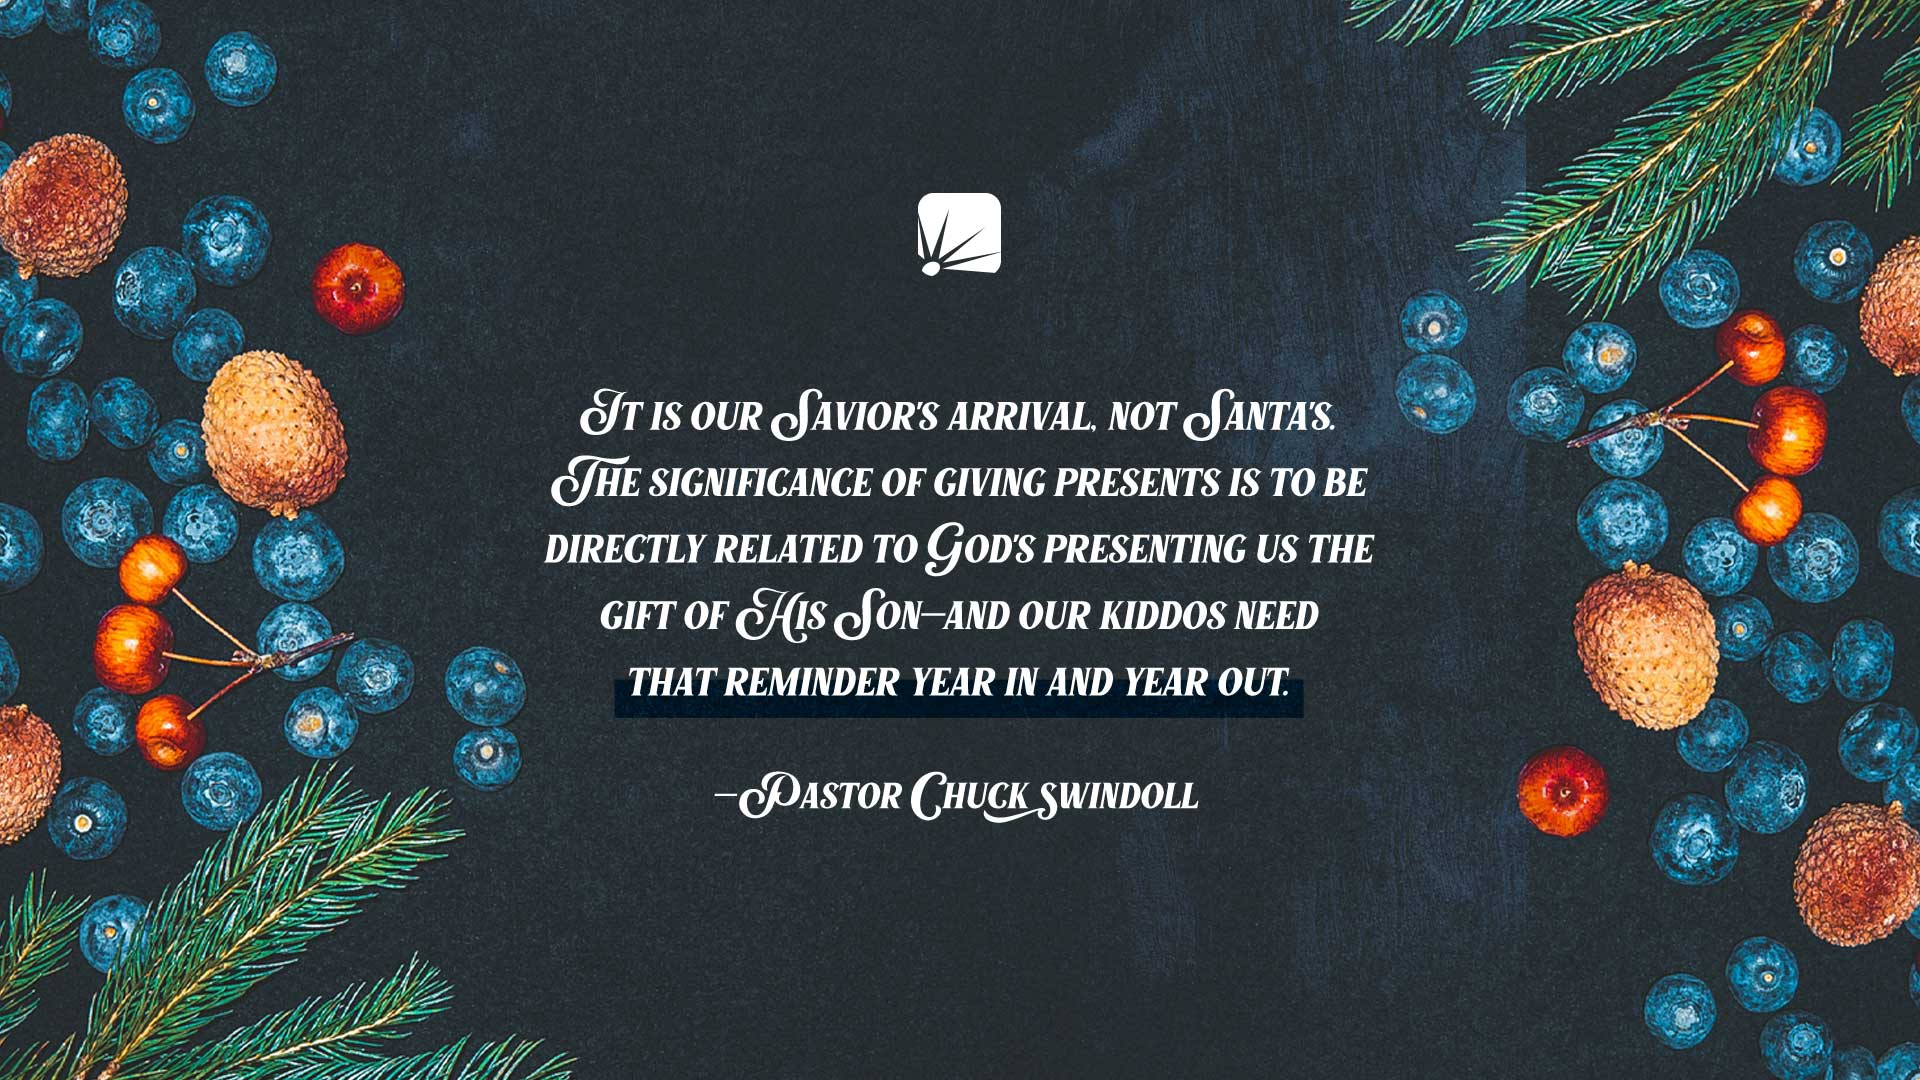 """quote: """"It is our Savior's arrival, not Santa's. The significance of giving presents is to be directly related to God's presenting us the Gift of His Son—and our kiddos need that reminder year in and year out."""" —Pastor Chuck Swindoll"""